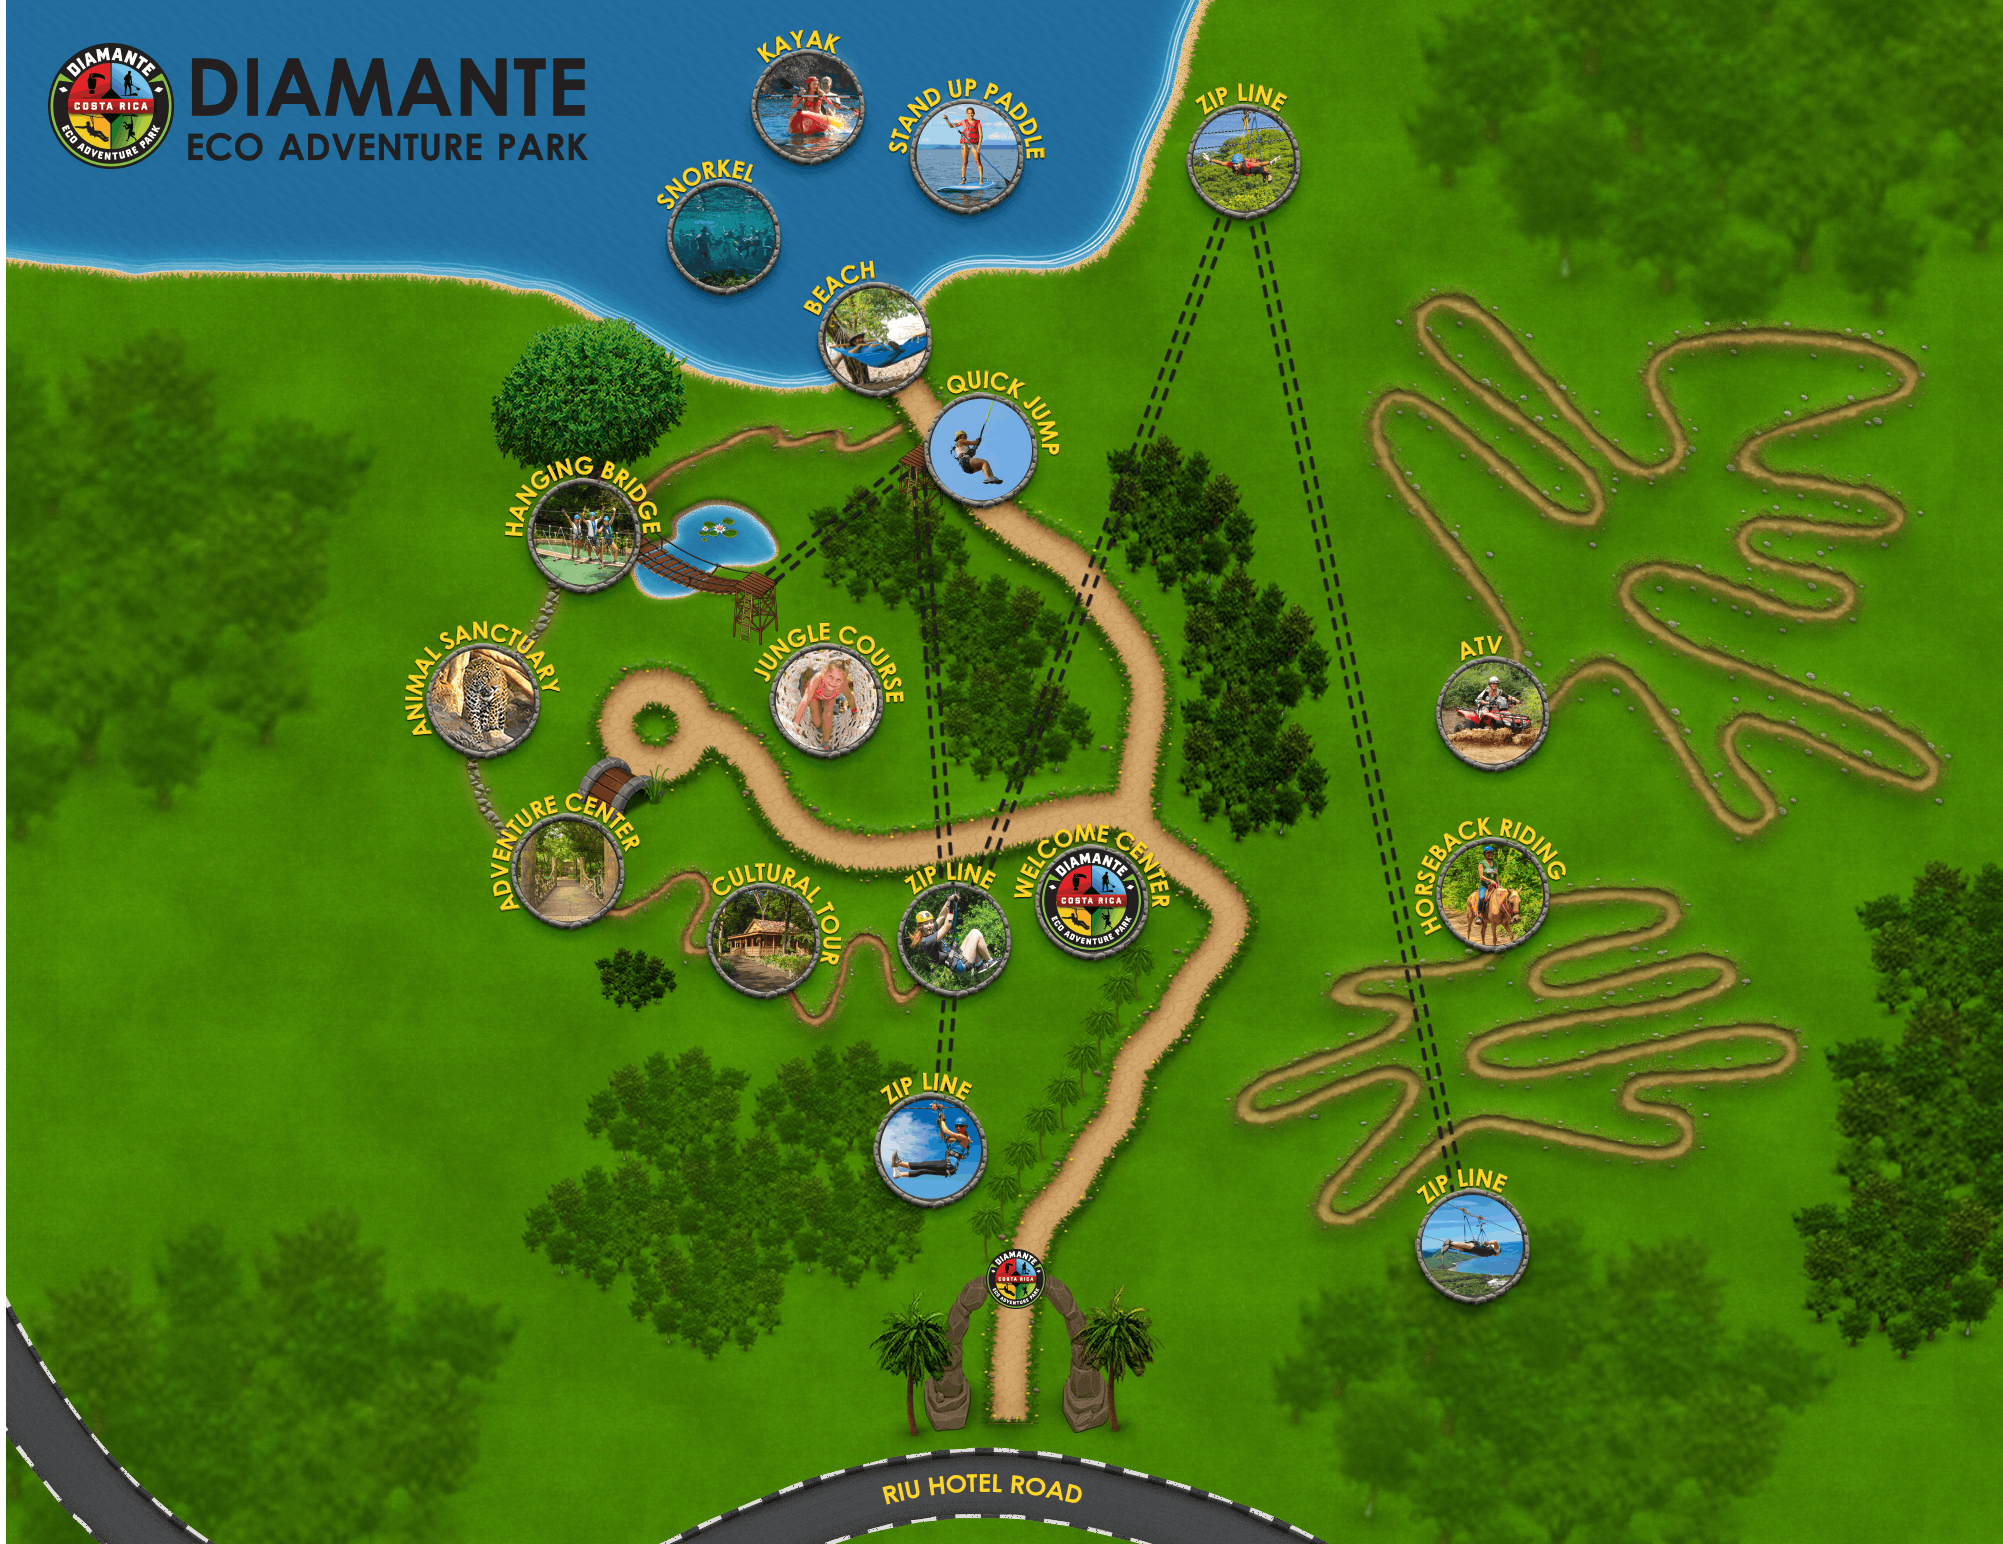 A map of Diamante Eco Adventure Park